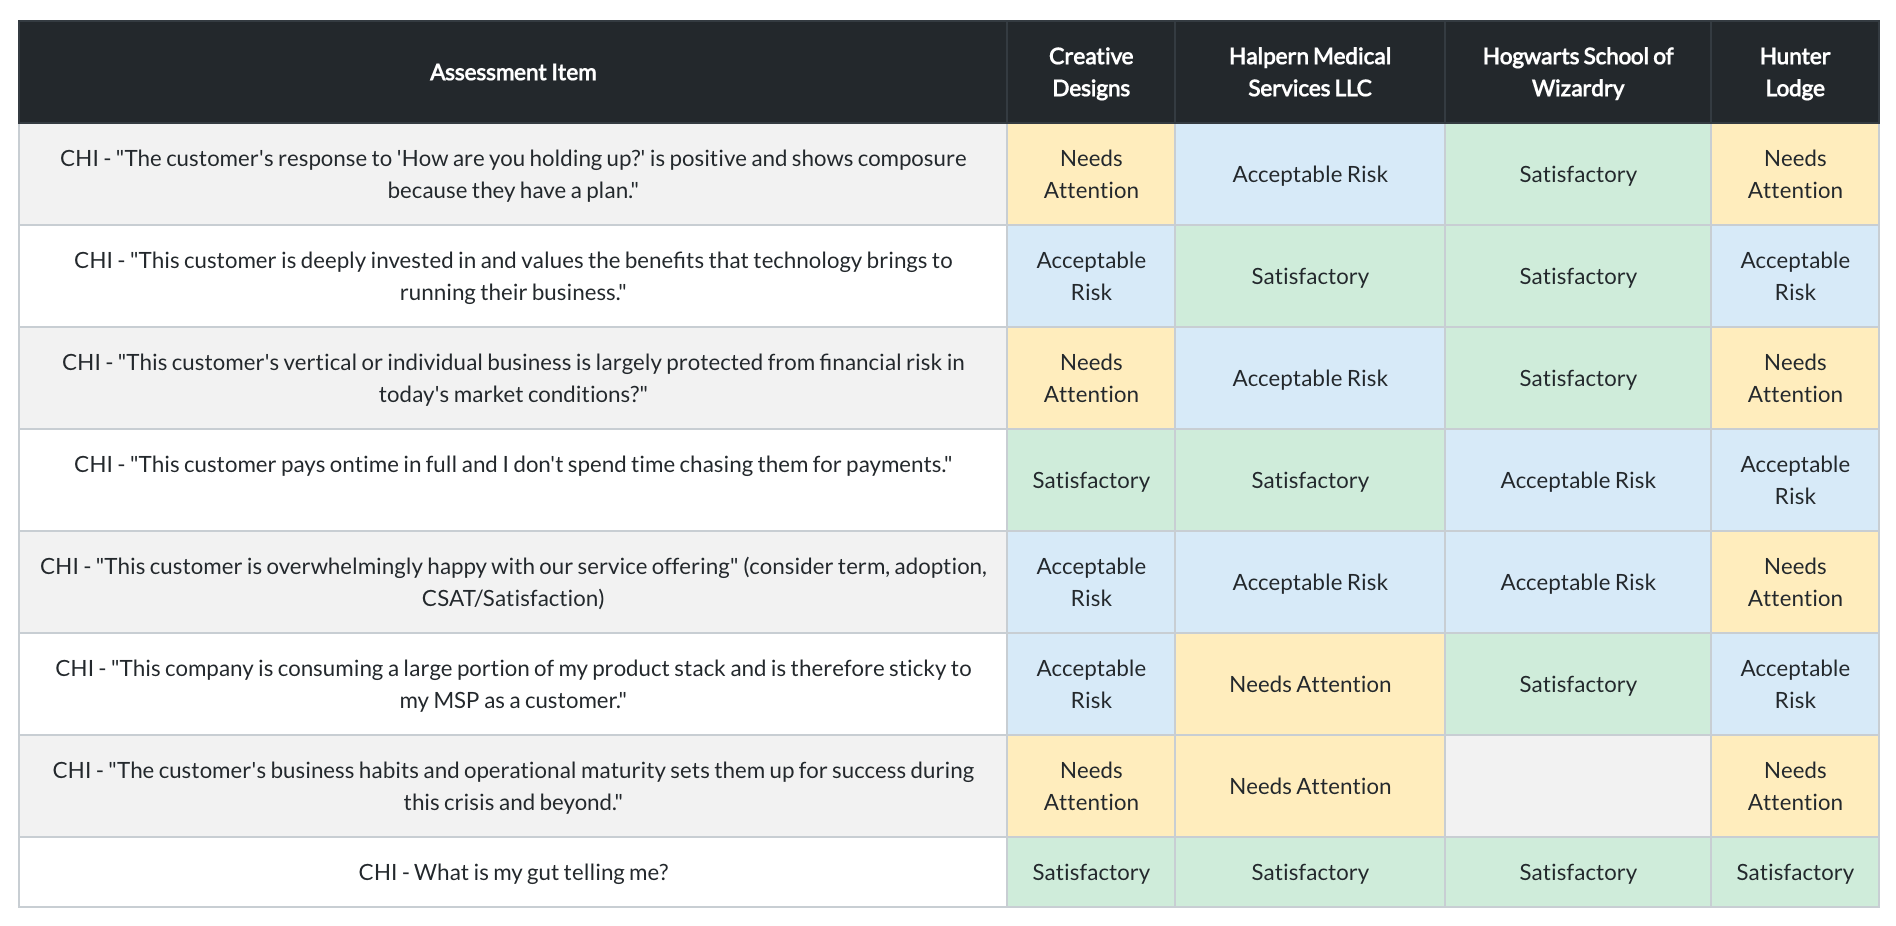 Cross client summary of customer health inventory